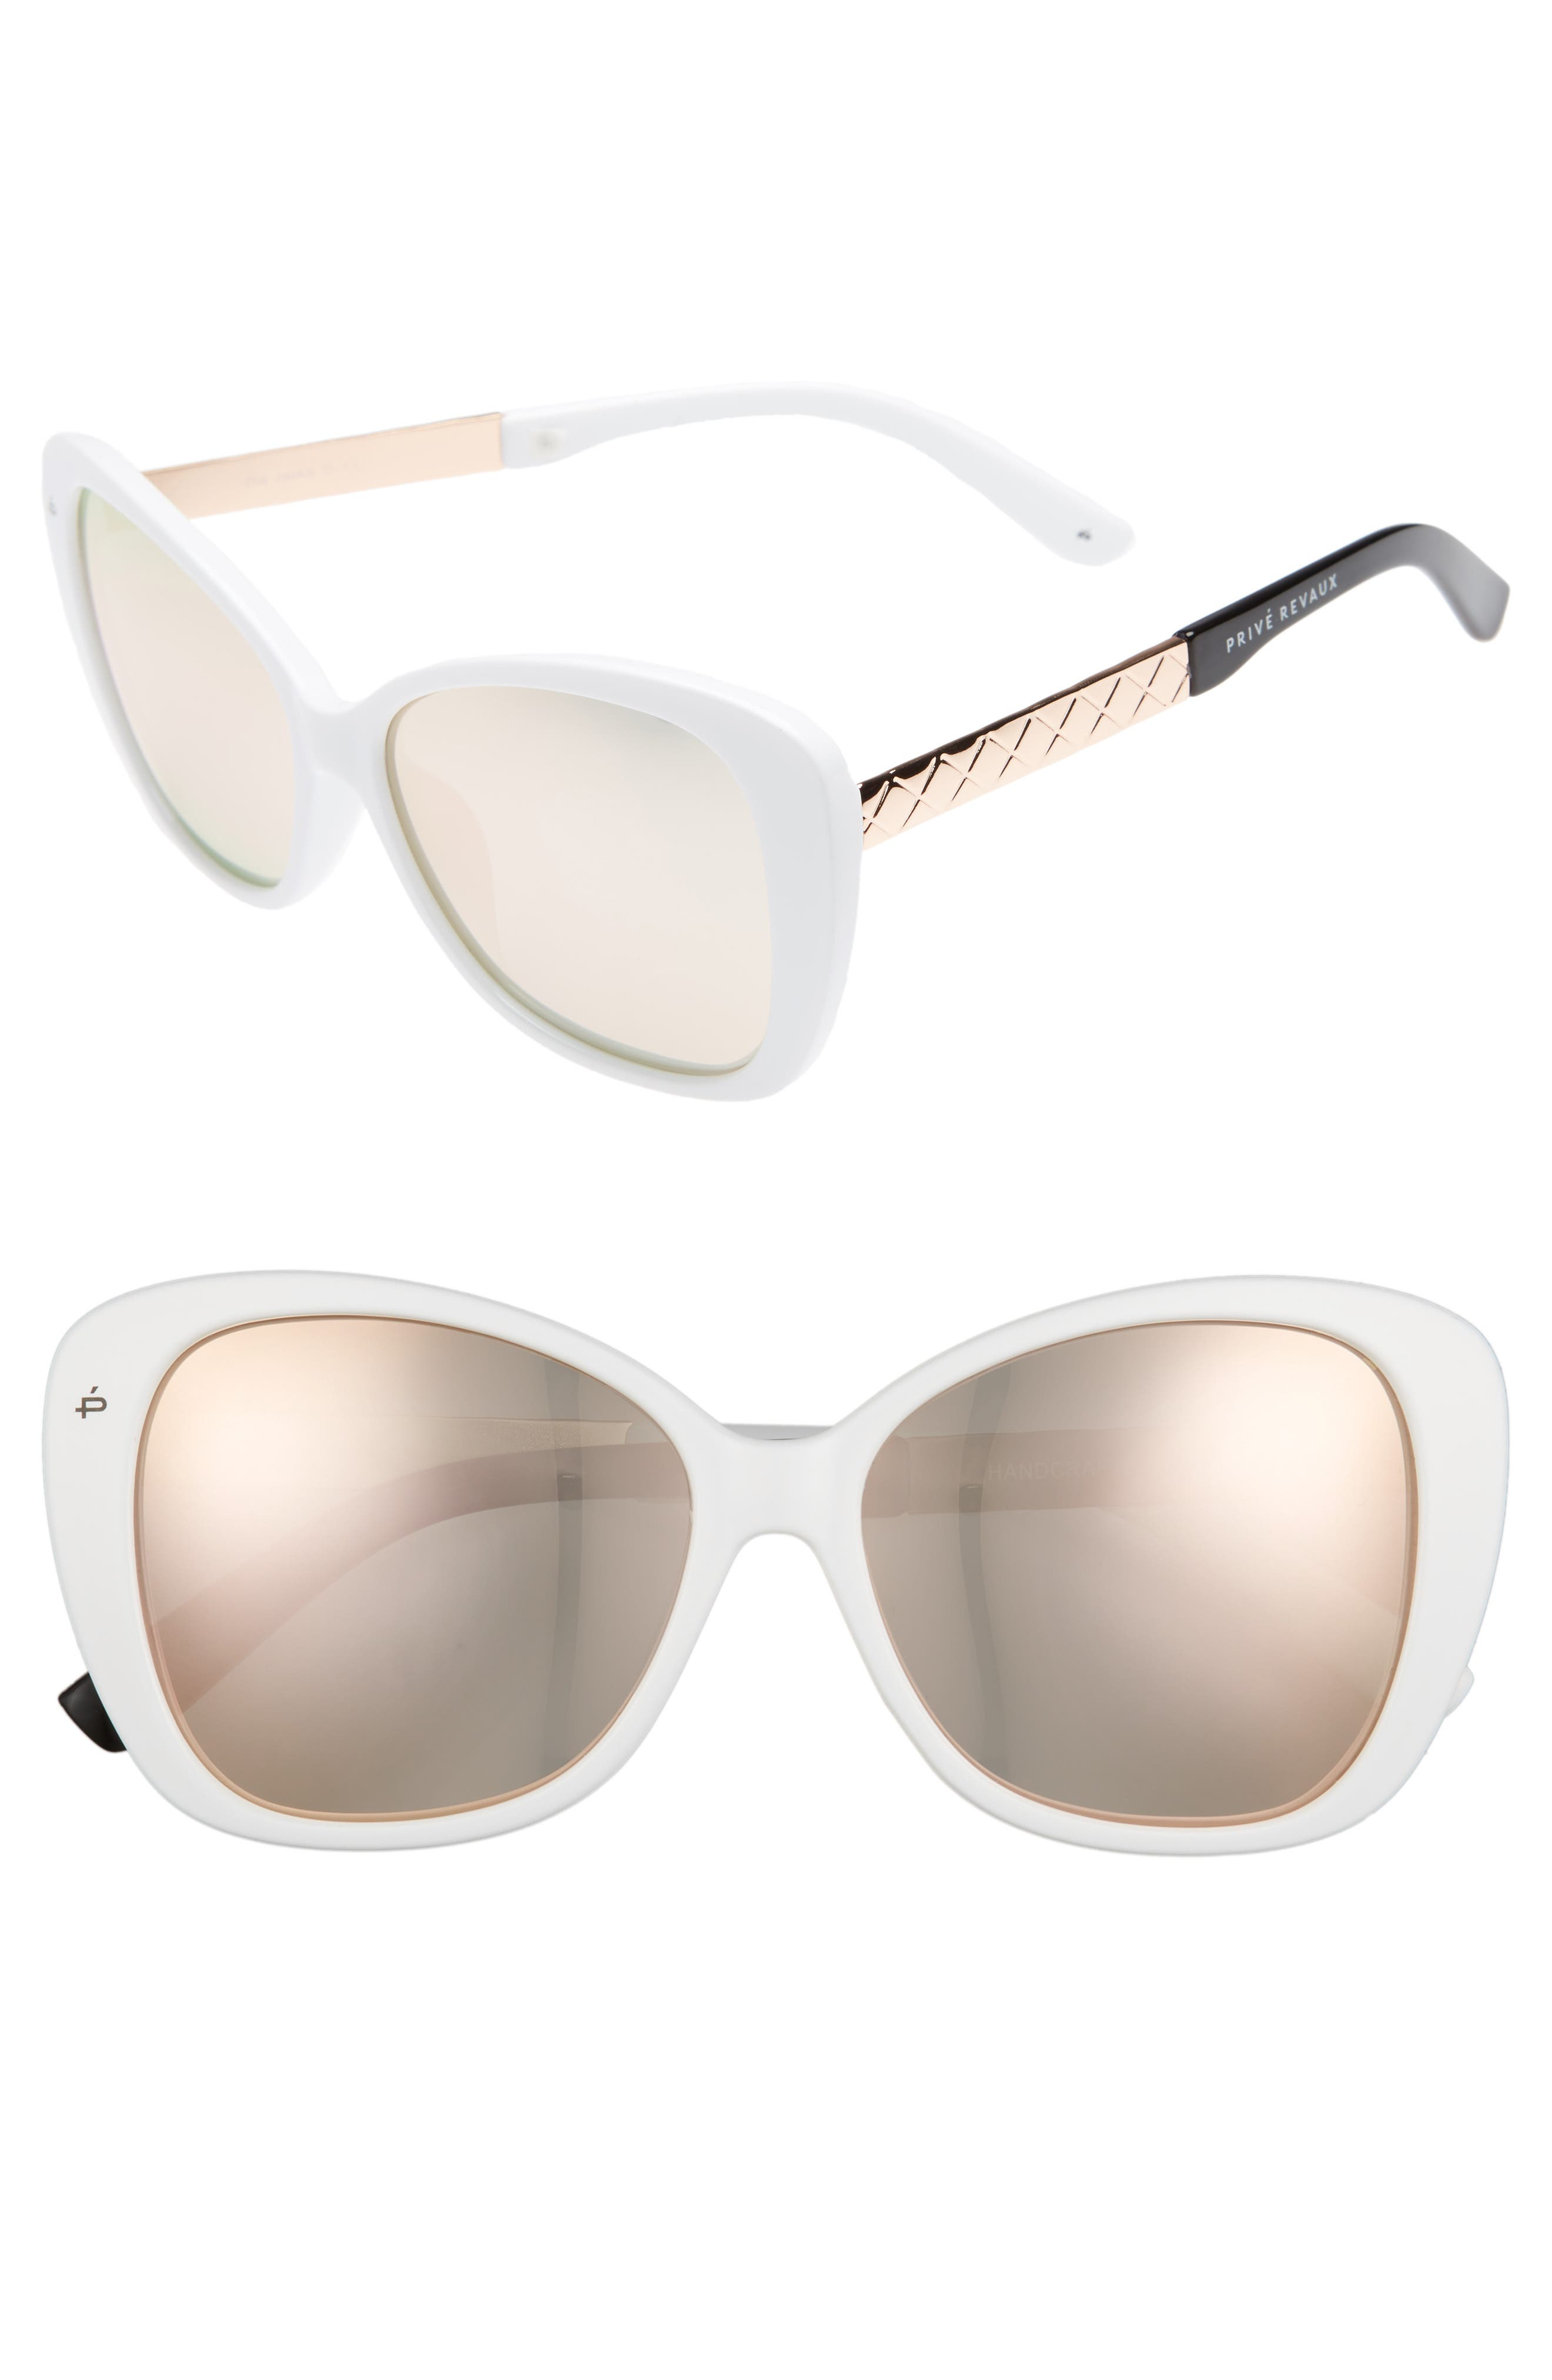 Privé Revaux The Jackie O 56mm Cat Eye Sunglasses,                         Main,                         color, 100